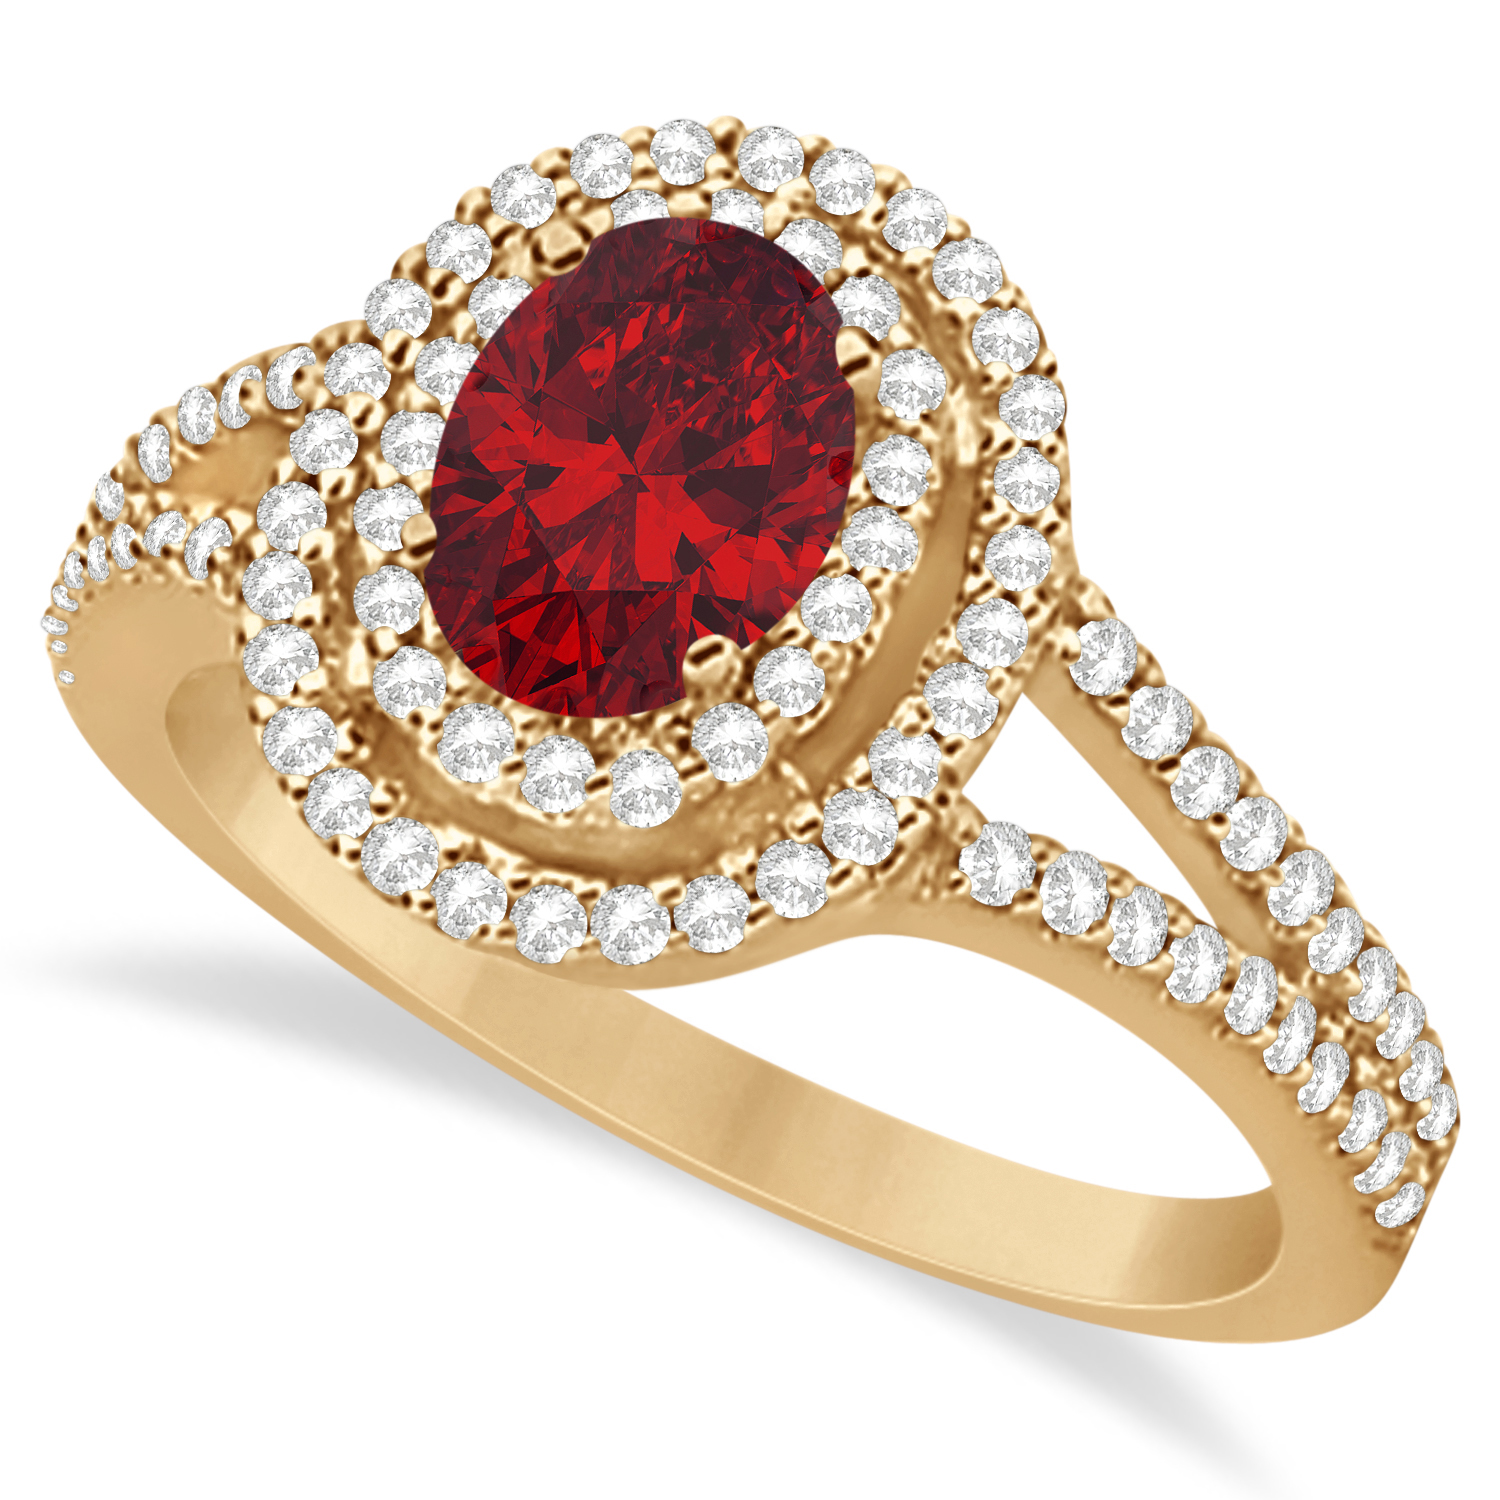 Double Halo Diamond & Ruby Engagement Ring 14K Rose Gold 1.34ctw